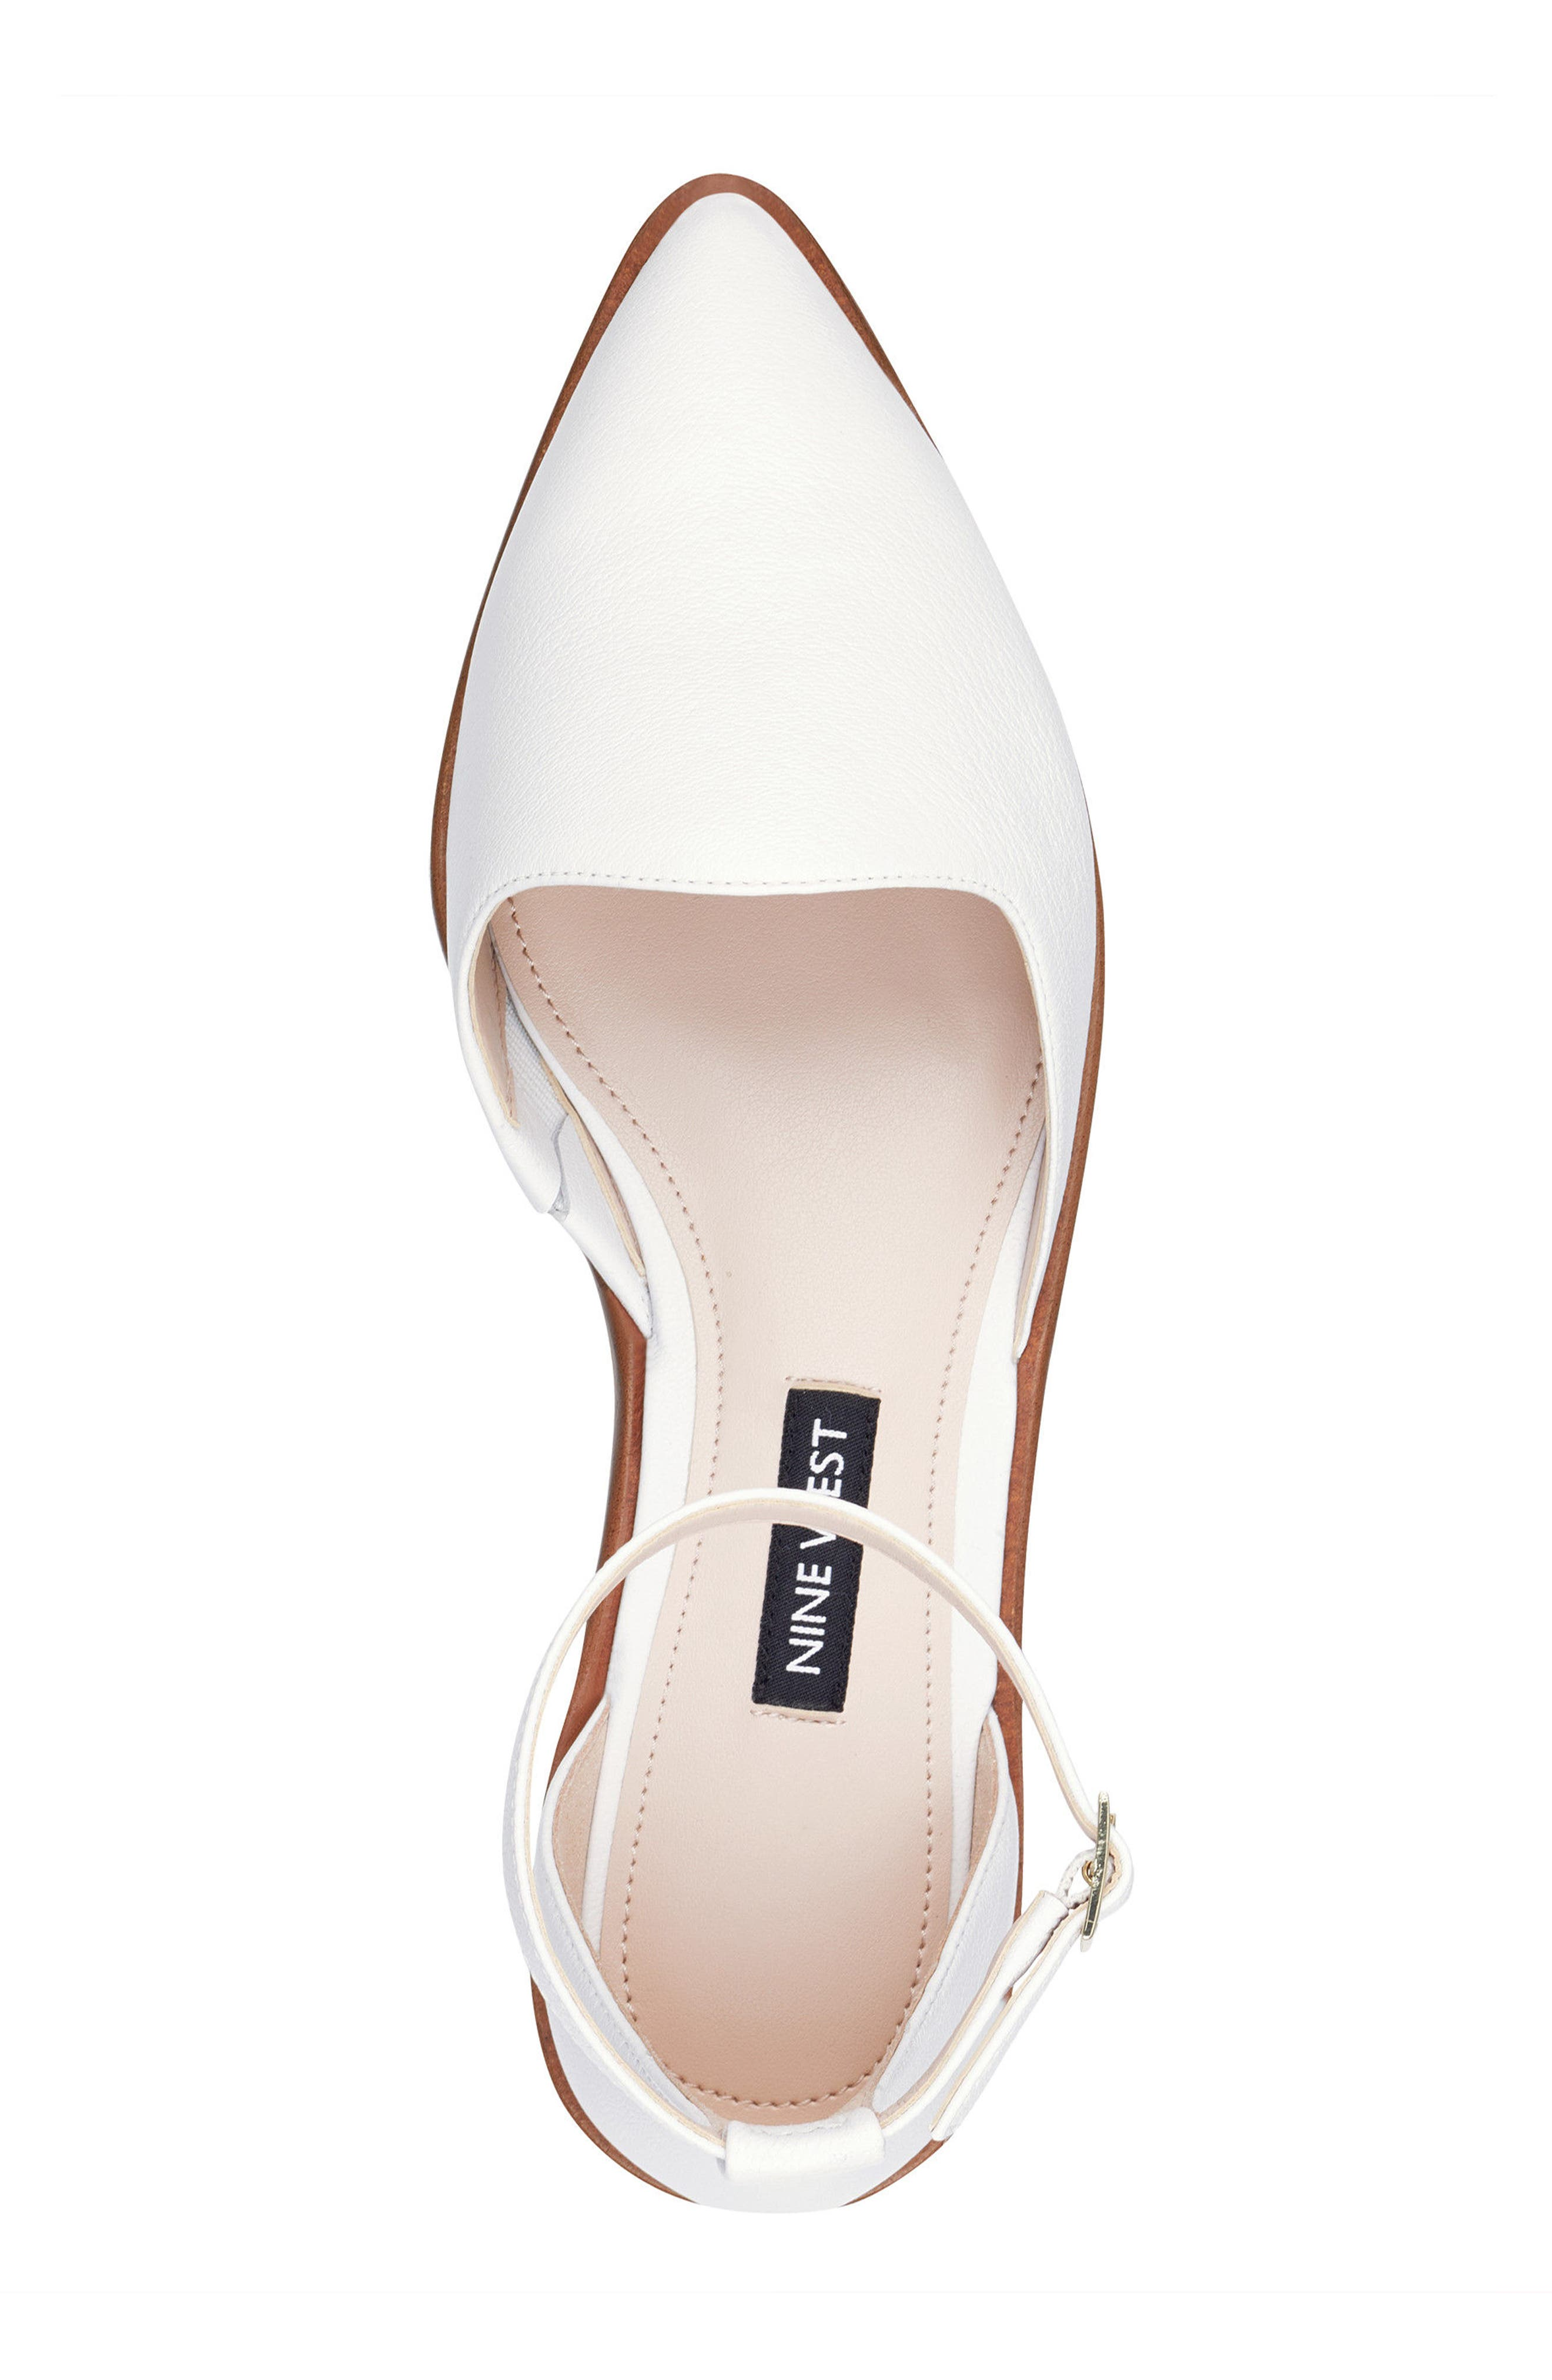 Oriona Ankle Strap Flat,                             Alternate thumbnail 5, color,                             White Leather